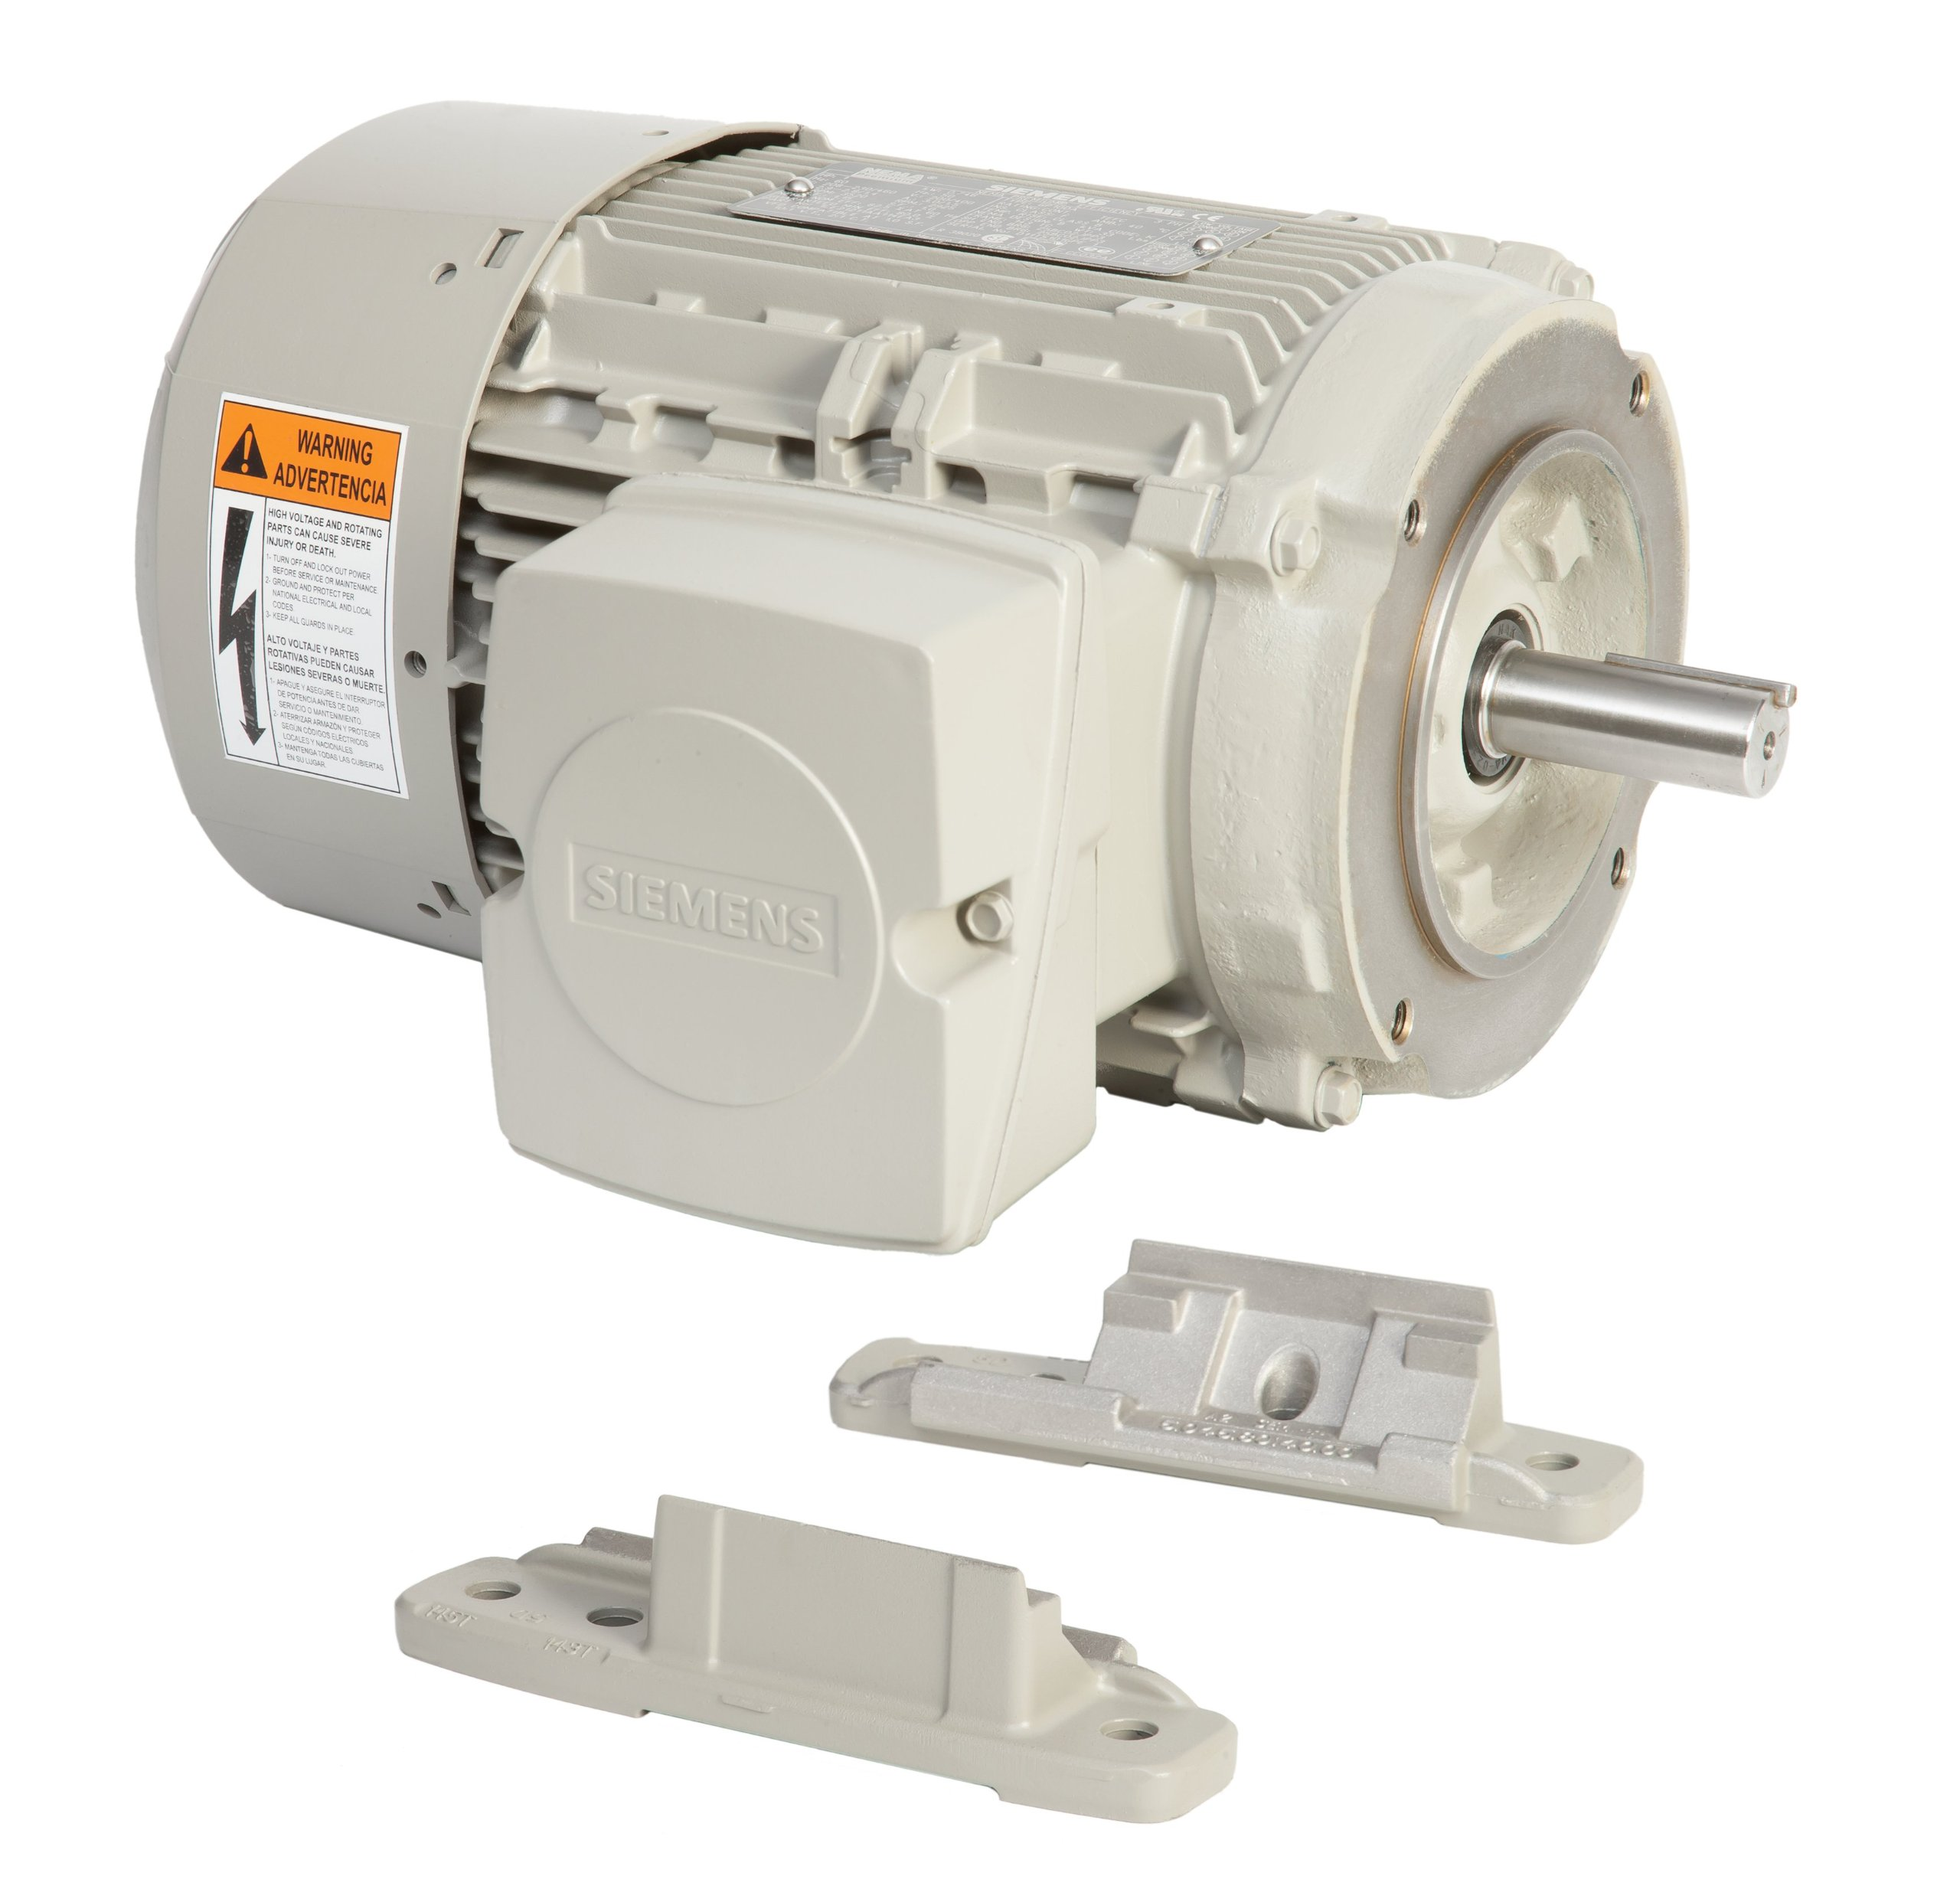 Siemens 1LE21212AA214EA3 10-HP 3600 Rpm 208 230/460-volt 215tc General Purpose Electric Motor Nema Premium Efficient Aluminum Frame, Aluminum Rotor by Siemens